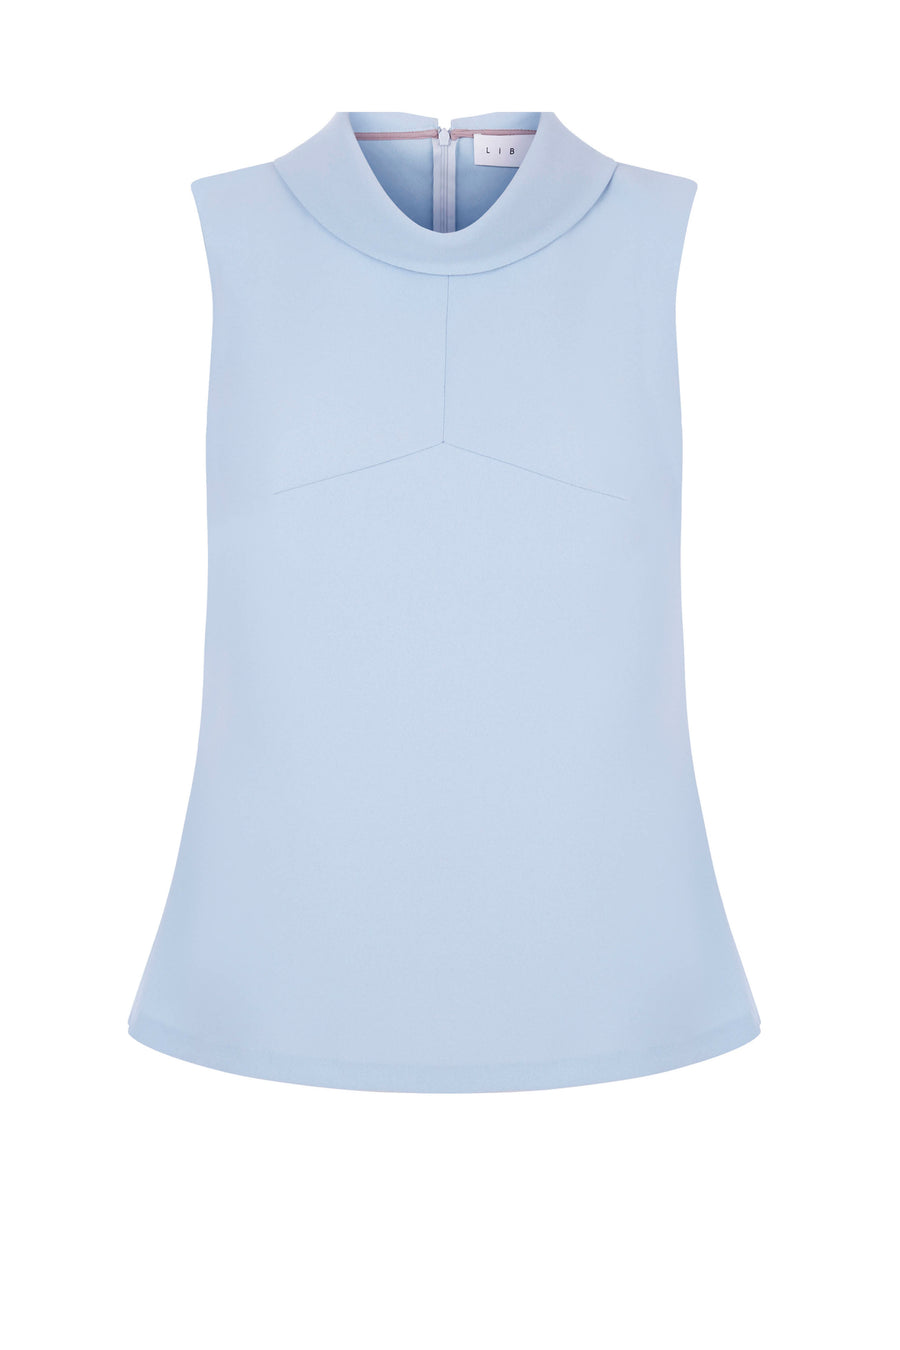 Corinthia Pale Blue